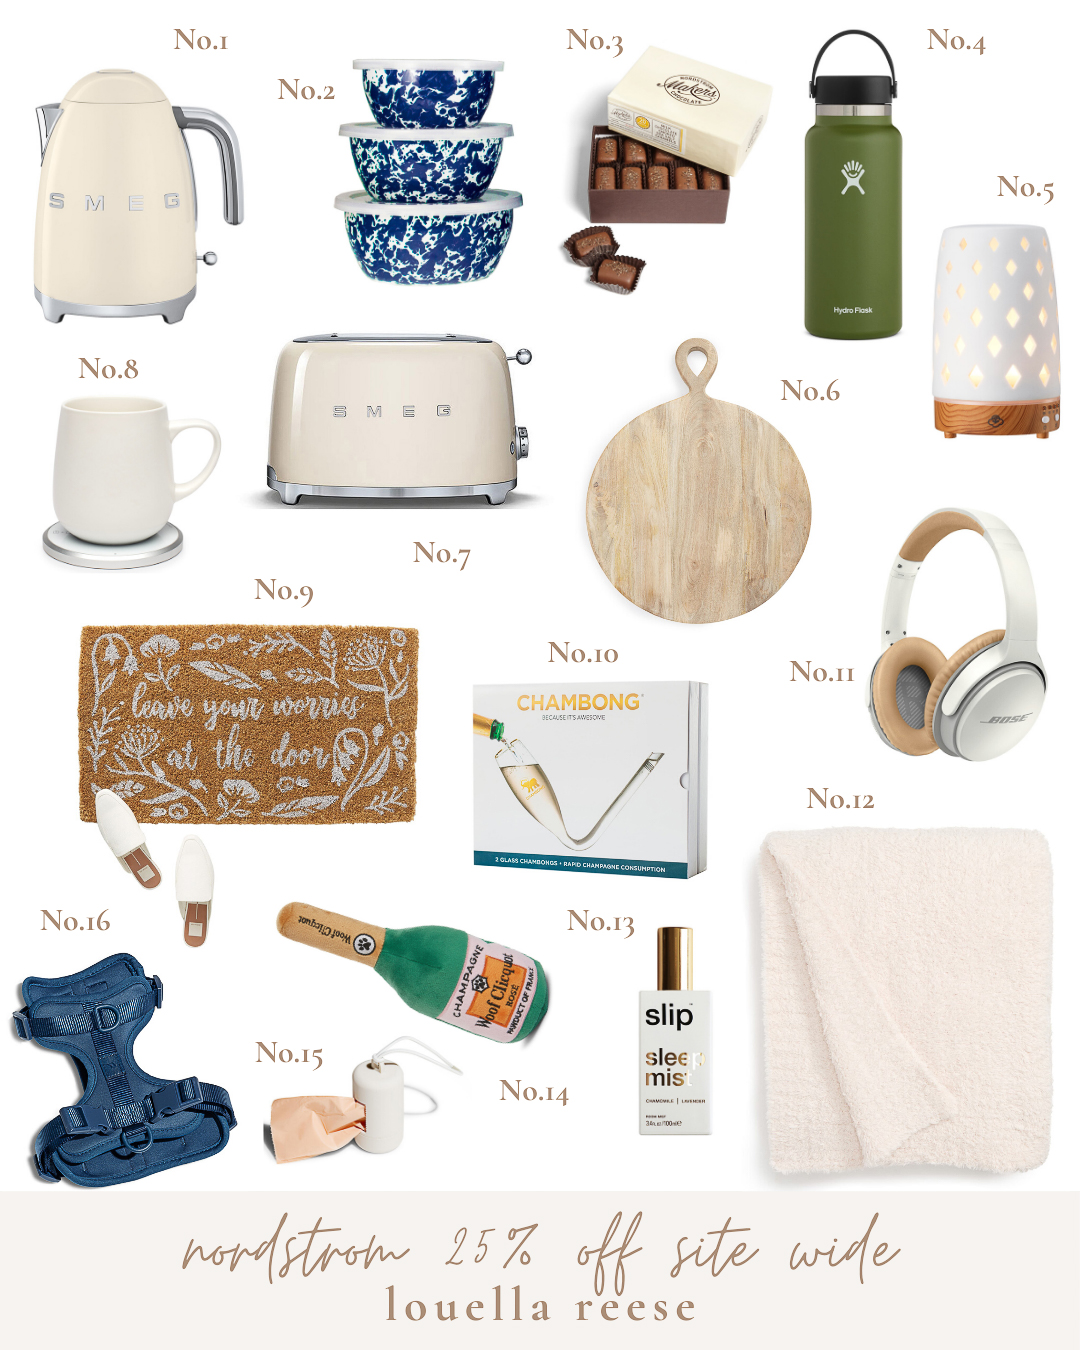 Nordstrom Sitewide Sale - 25% Off EVERYTHING | Nordstrom Home Decor Picks | Louella Reese